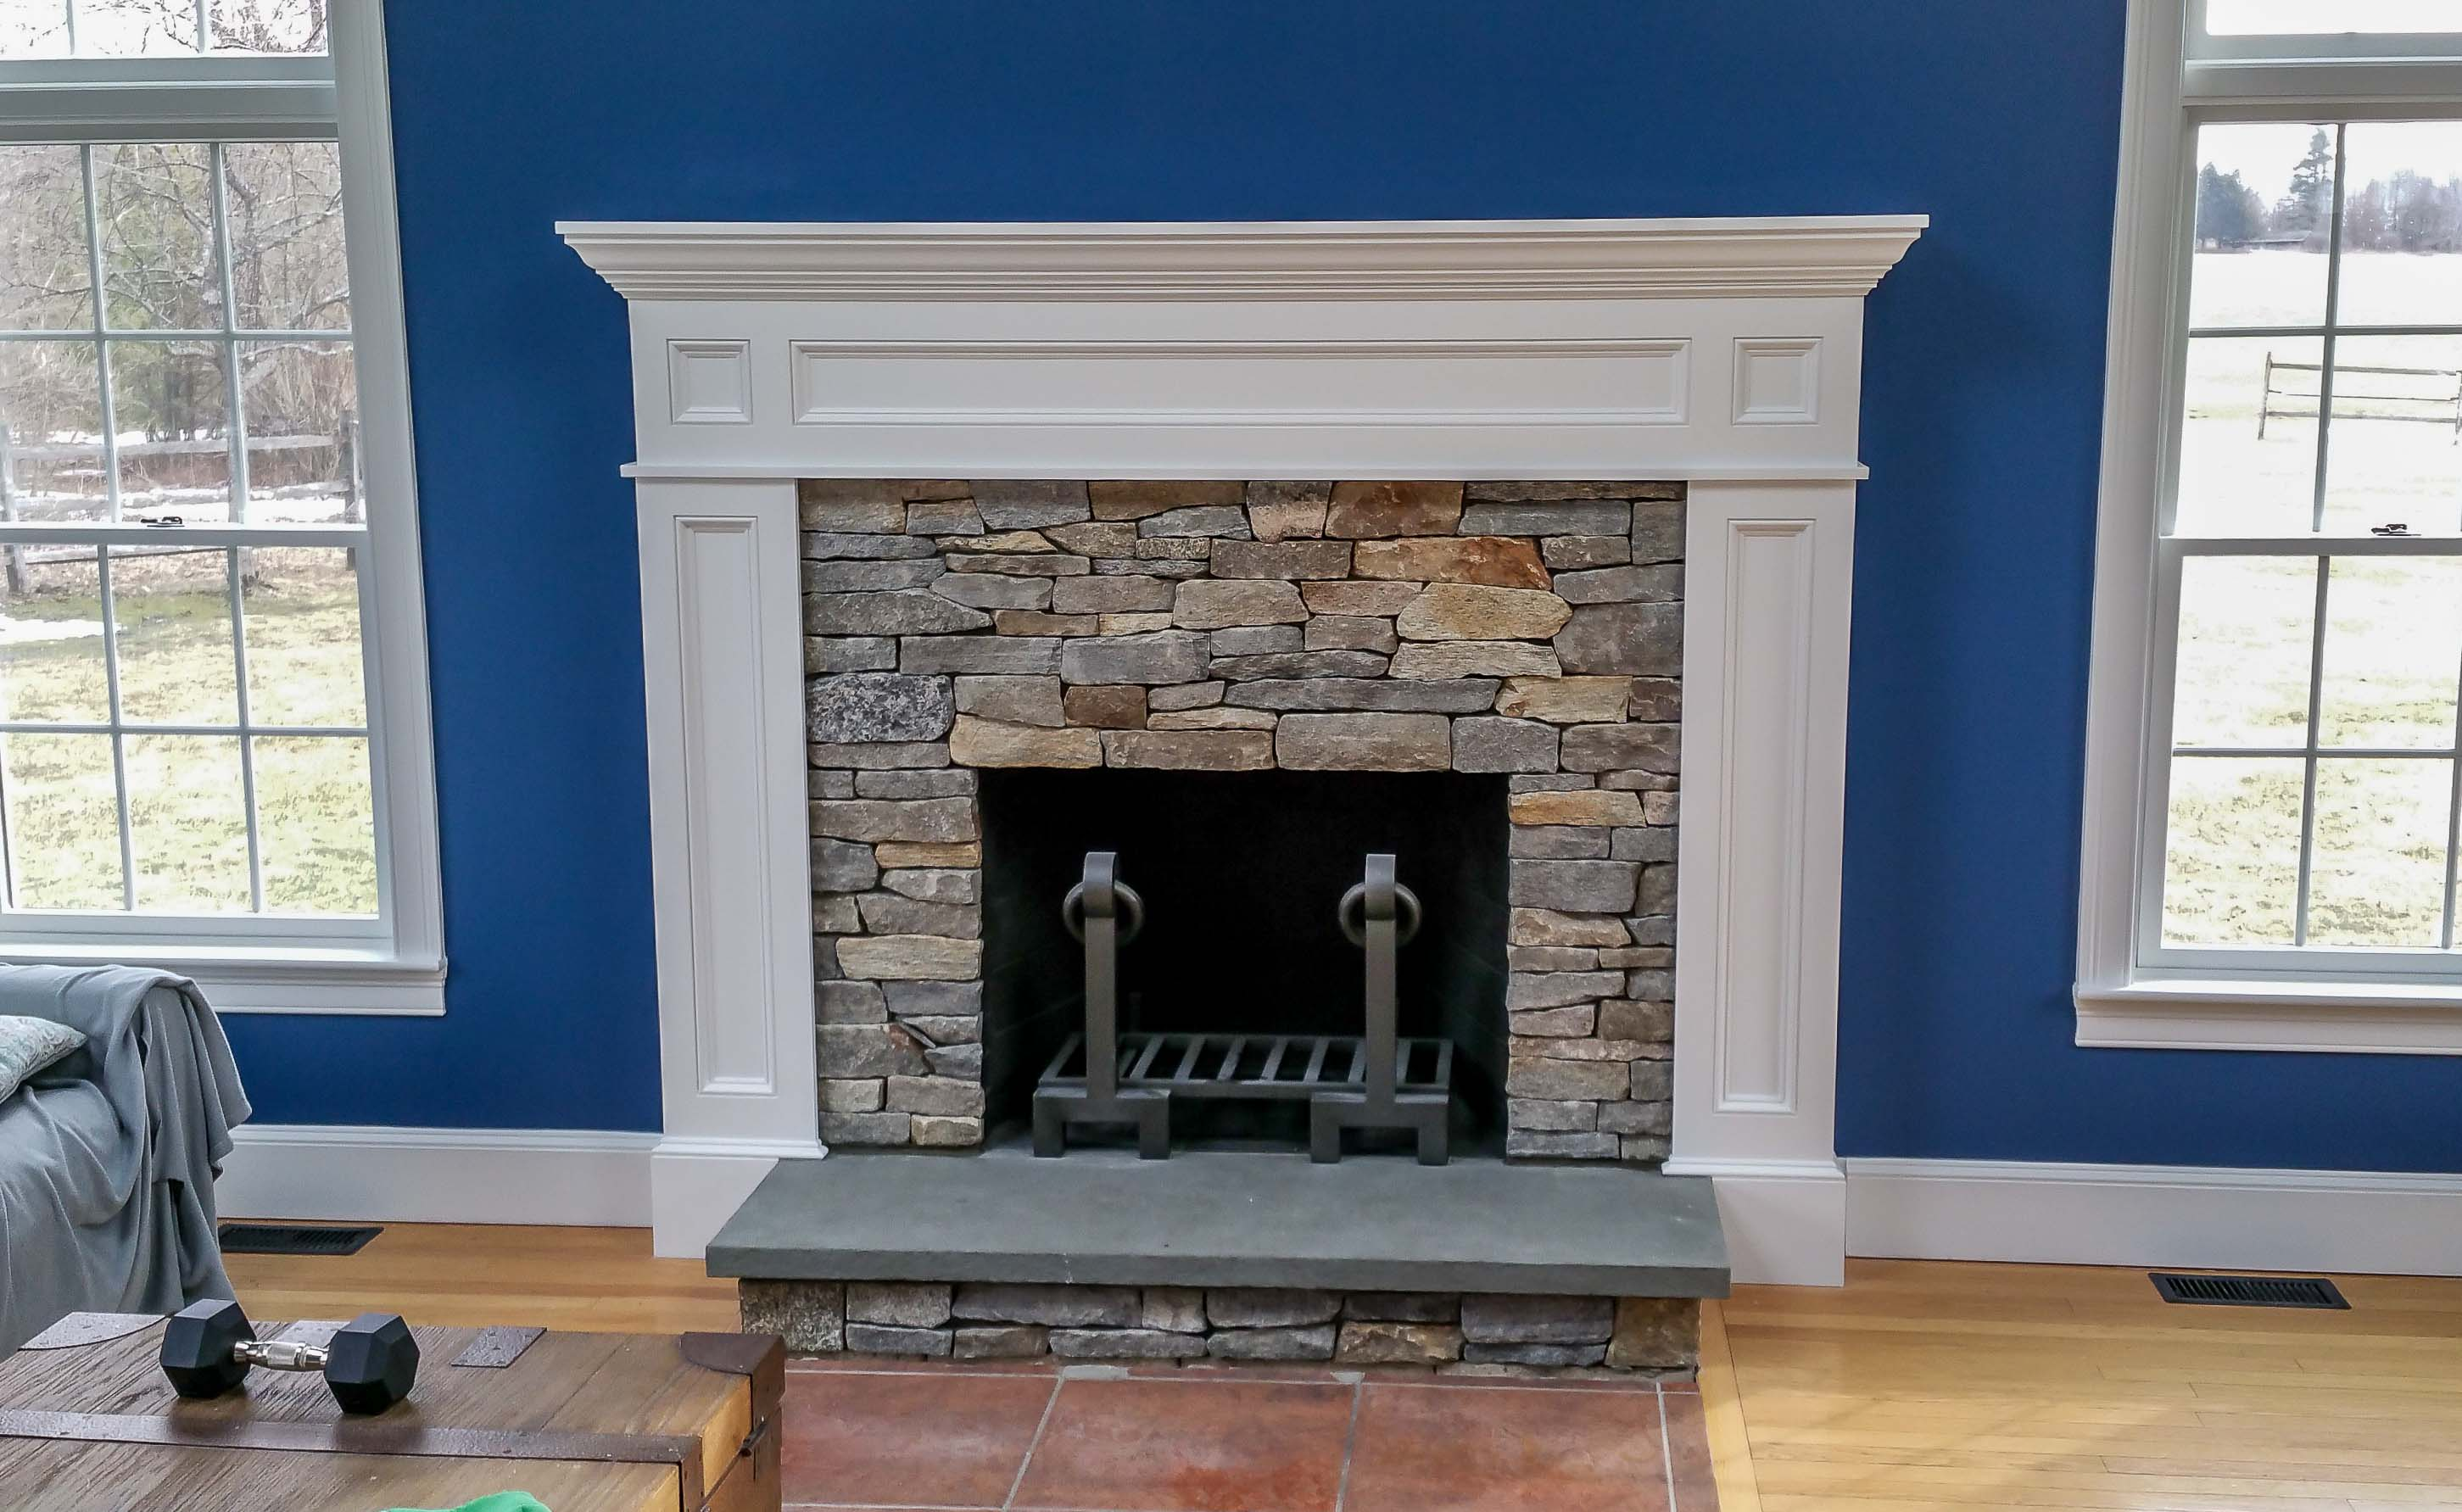 anatomy of a chimney and fireplace